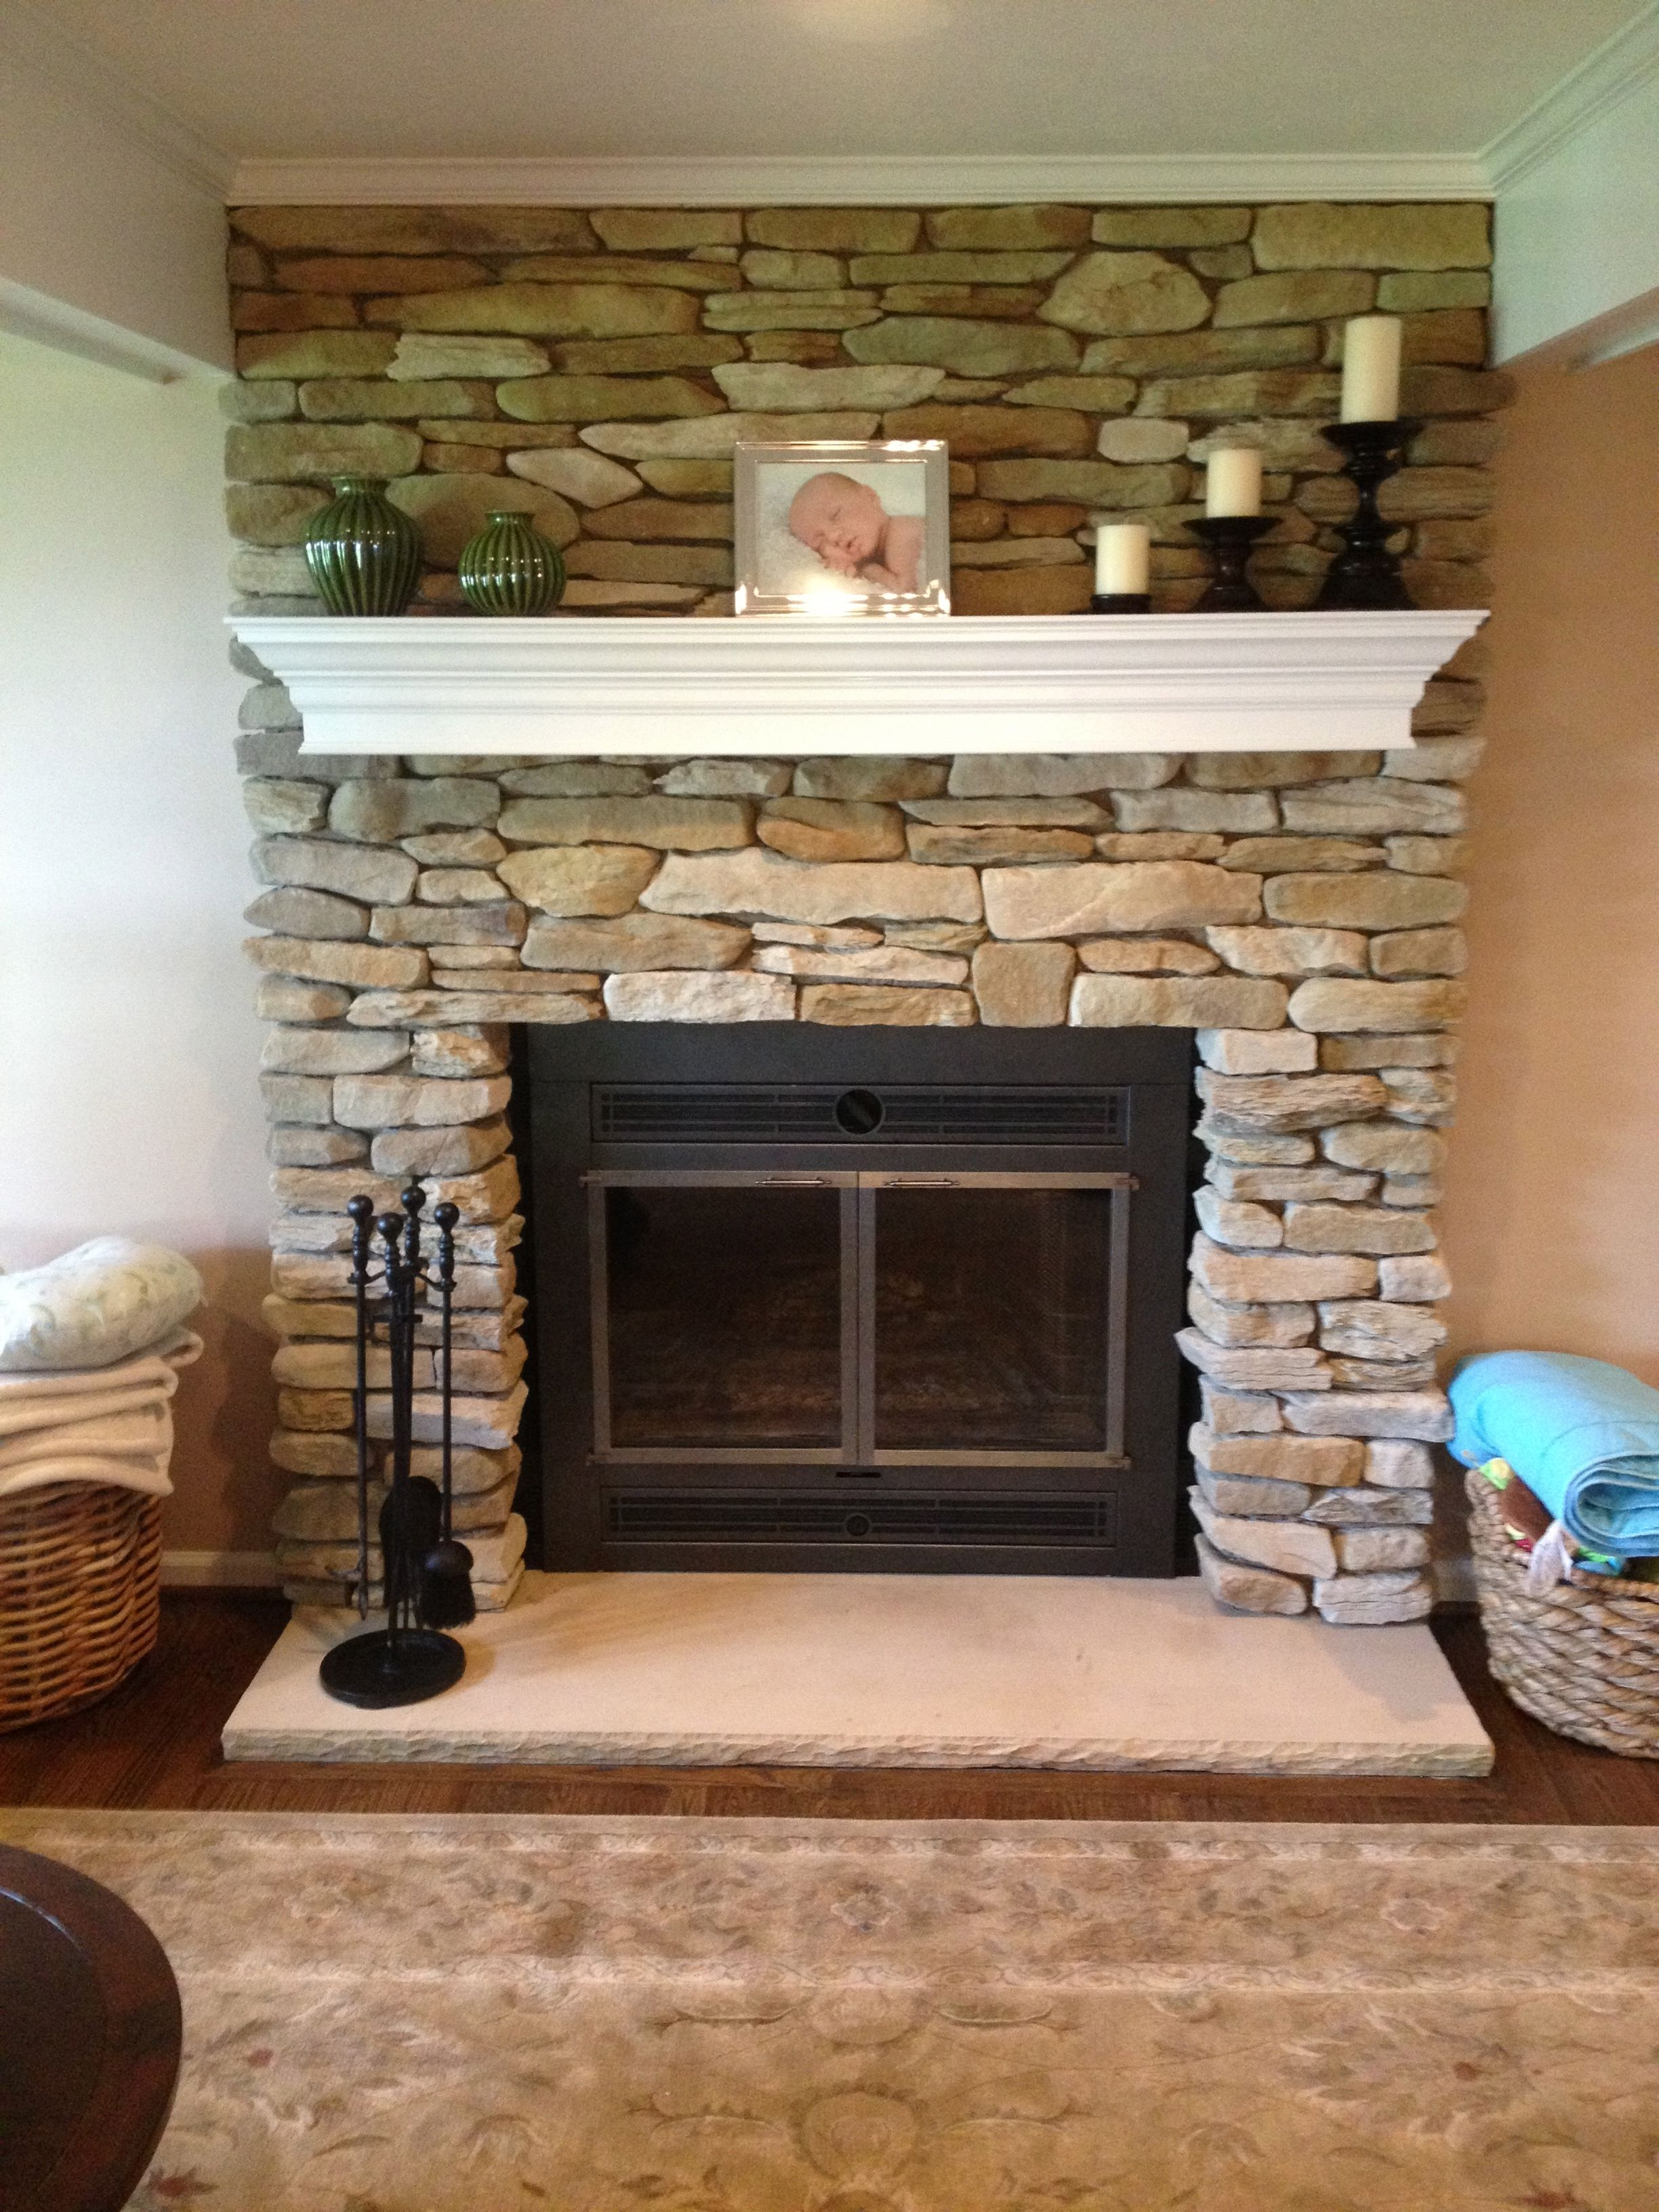 The New Refaced Fireplace With New Fireplace Doors And Custom